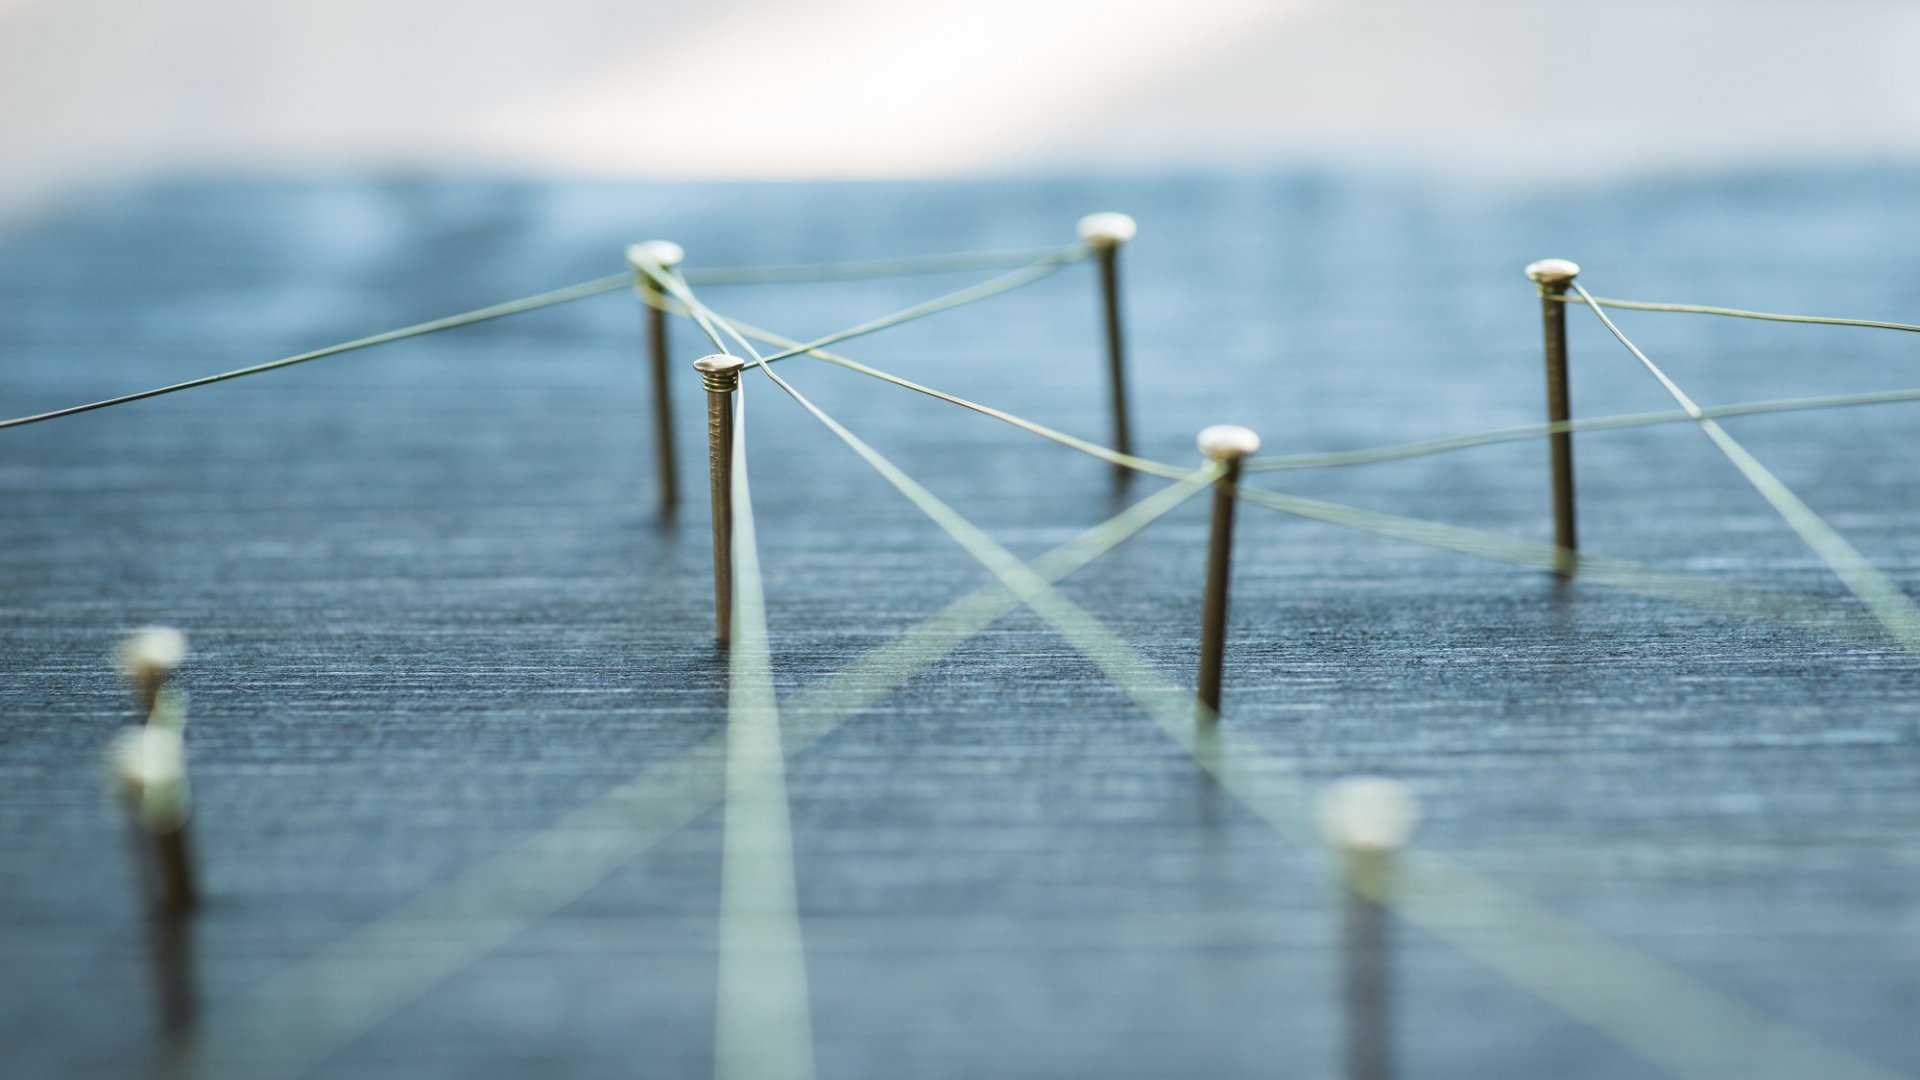 Most Organizational Charts Are Useless. Here's Why and What You Can Do Instead